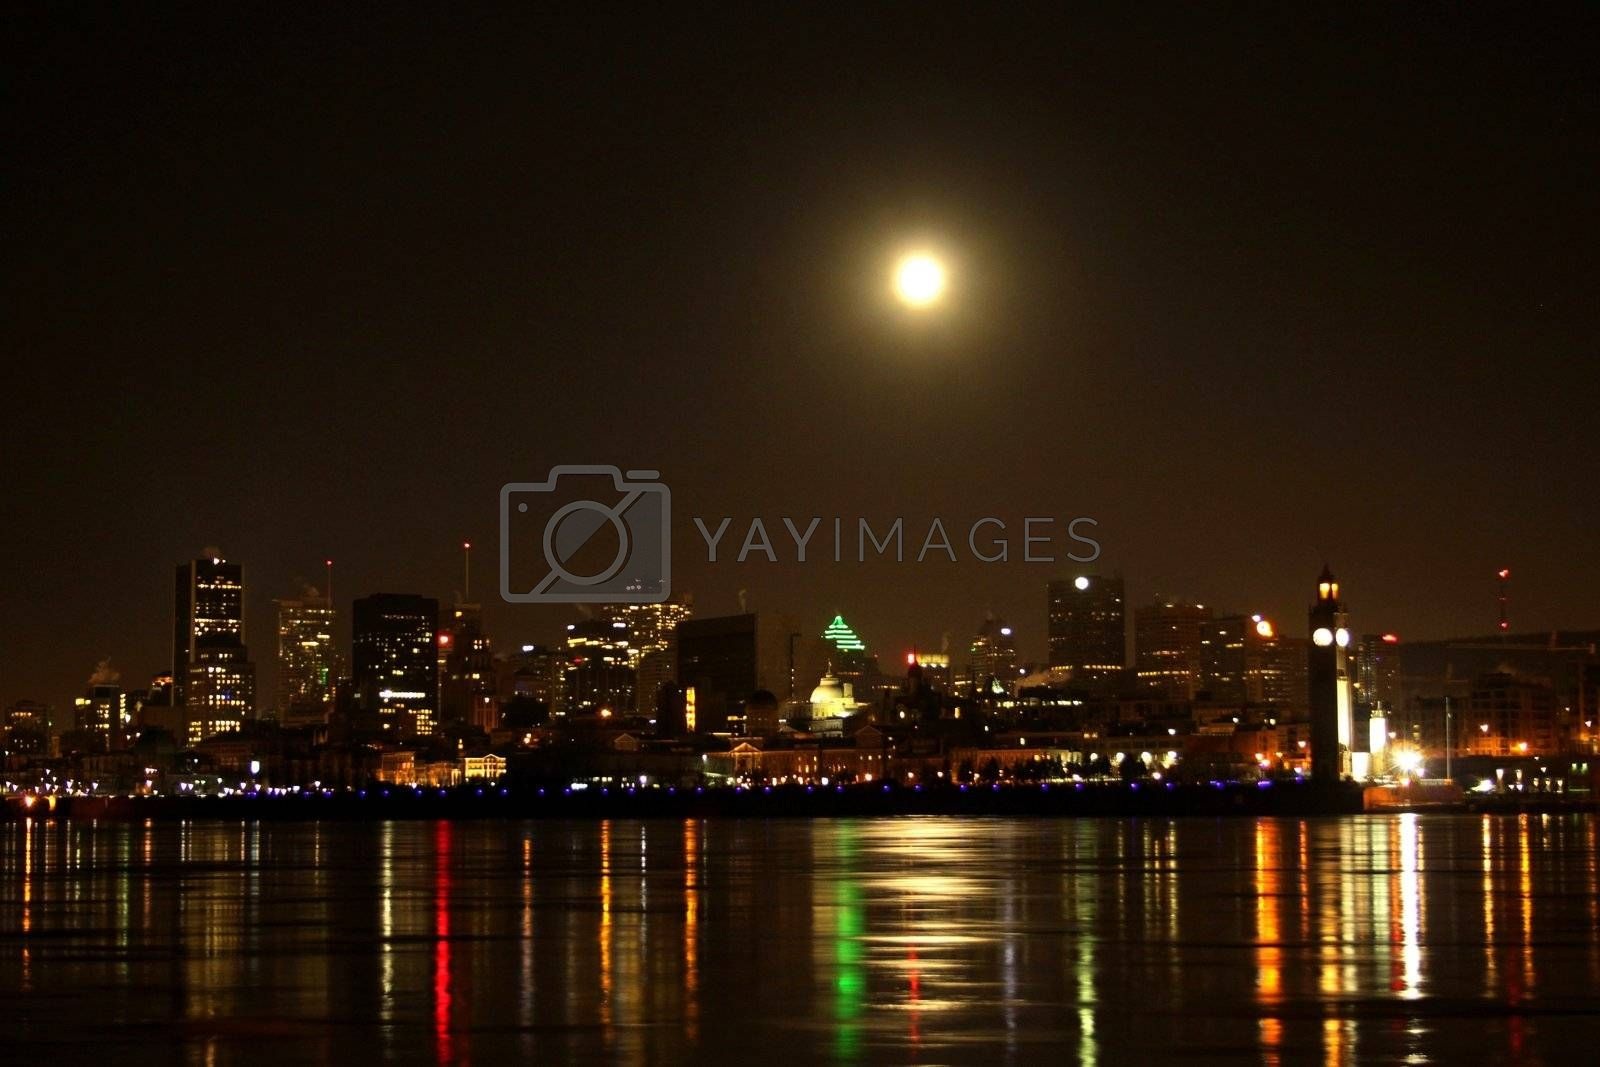 End of night full moon over Montreal cityscape